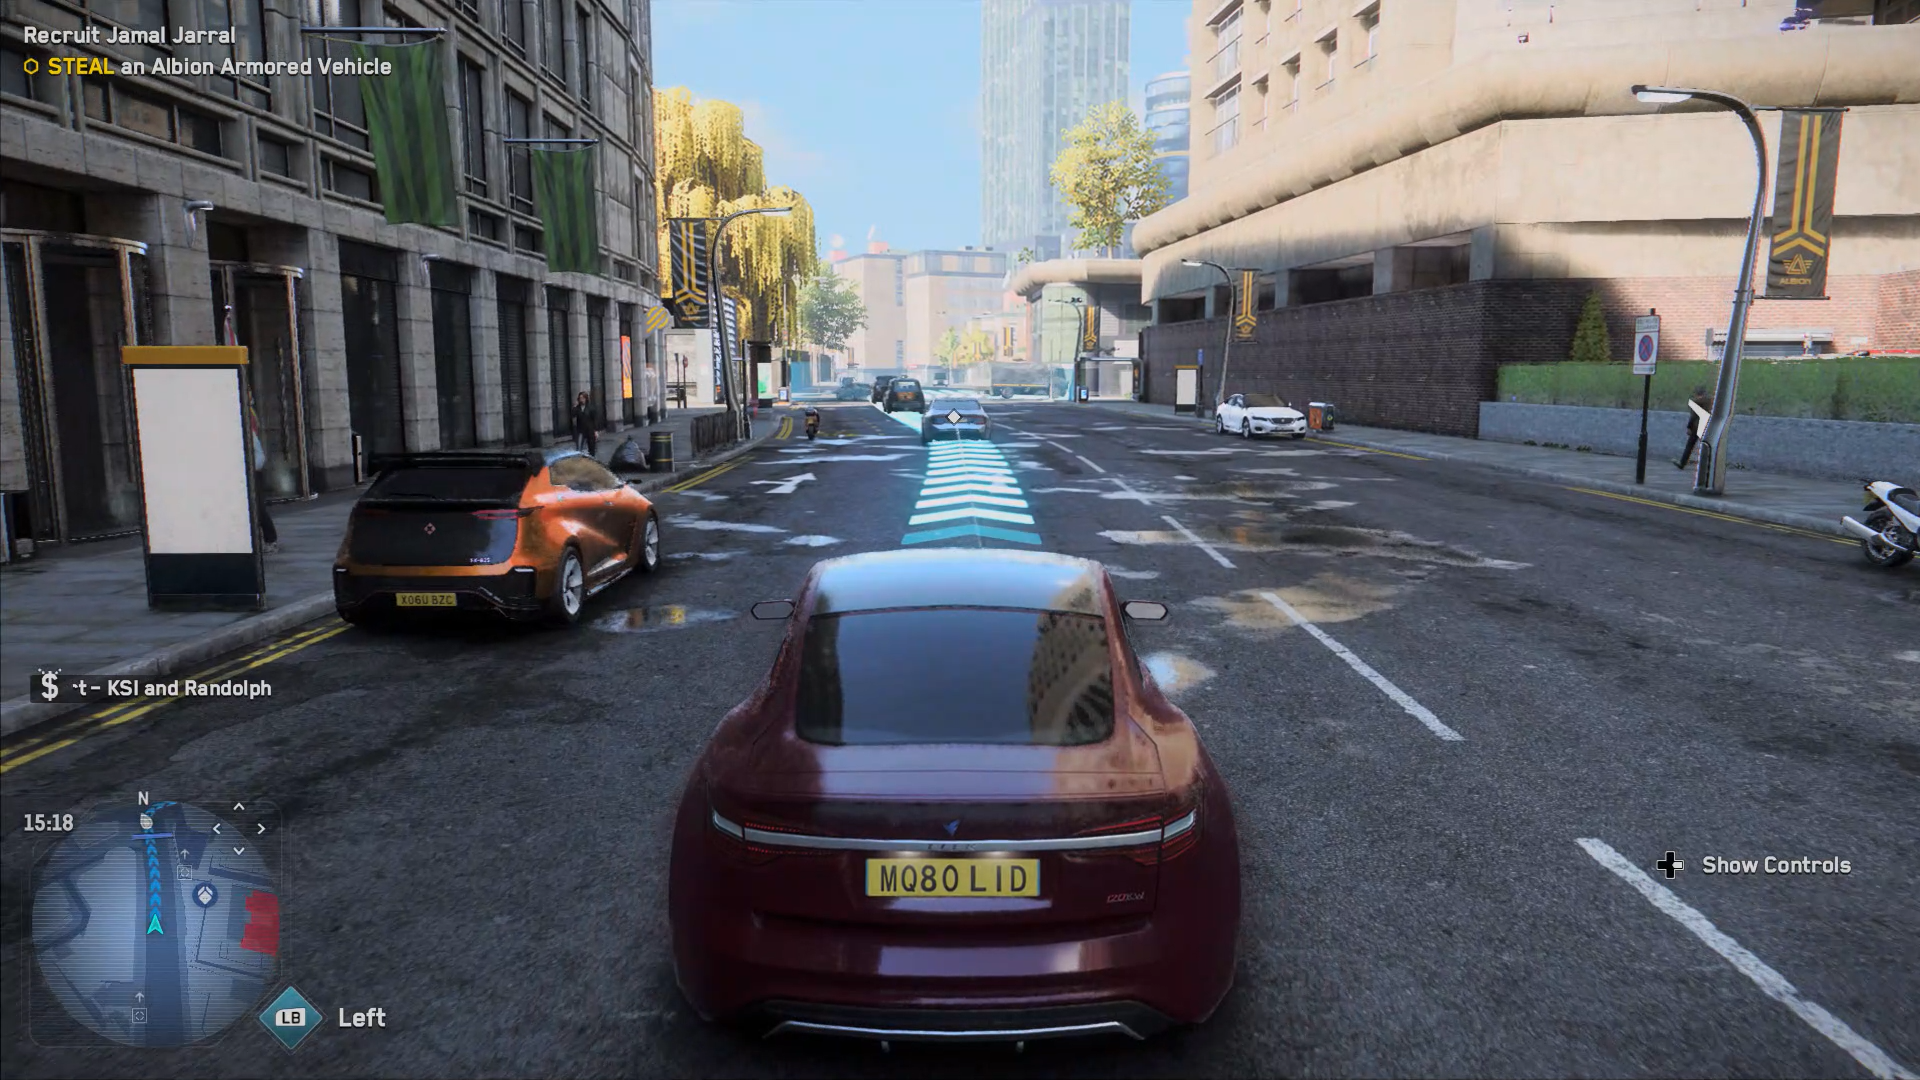 A screenshot demonstrating Autodrive in Watch Dogs: Legion. The player controller vehicle has a path or blue arrows leading the way ahead of it in the street.